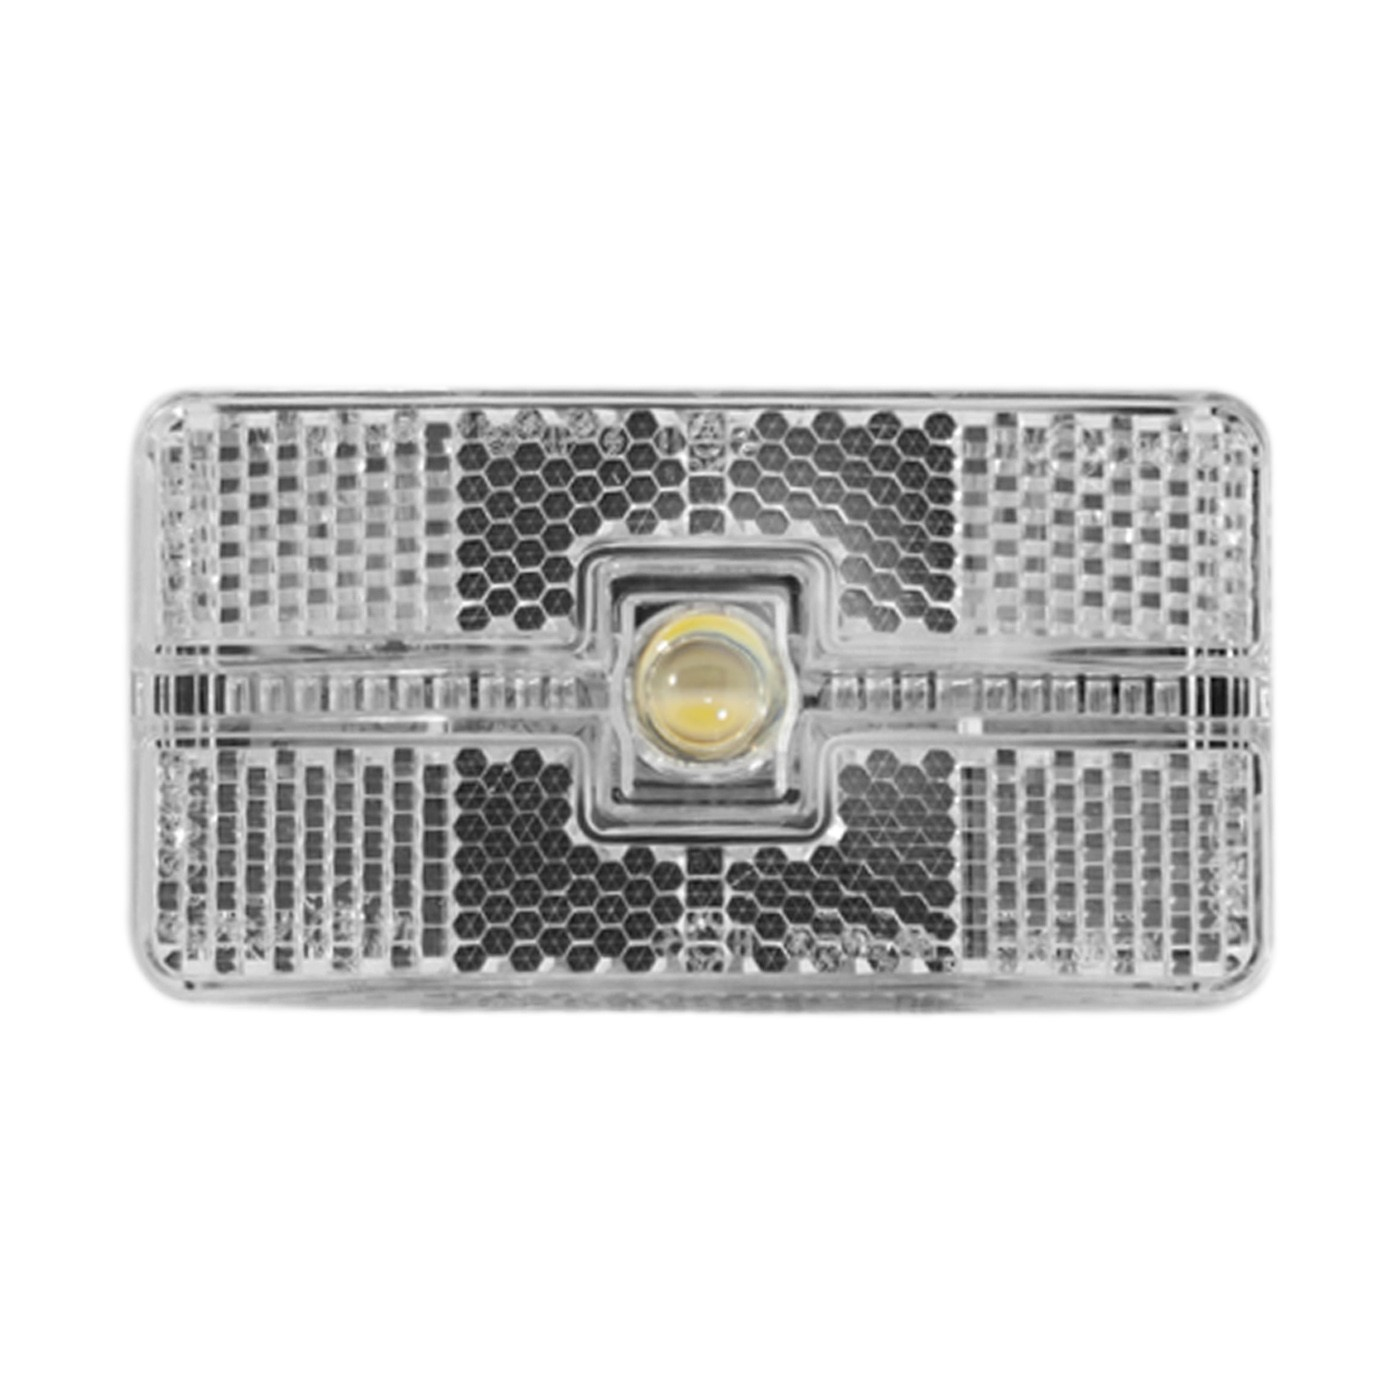 Luz CAT EYE Delantera TL-LD570-C Flashing Reflex Auto 5 Func. 5 Leds